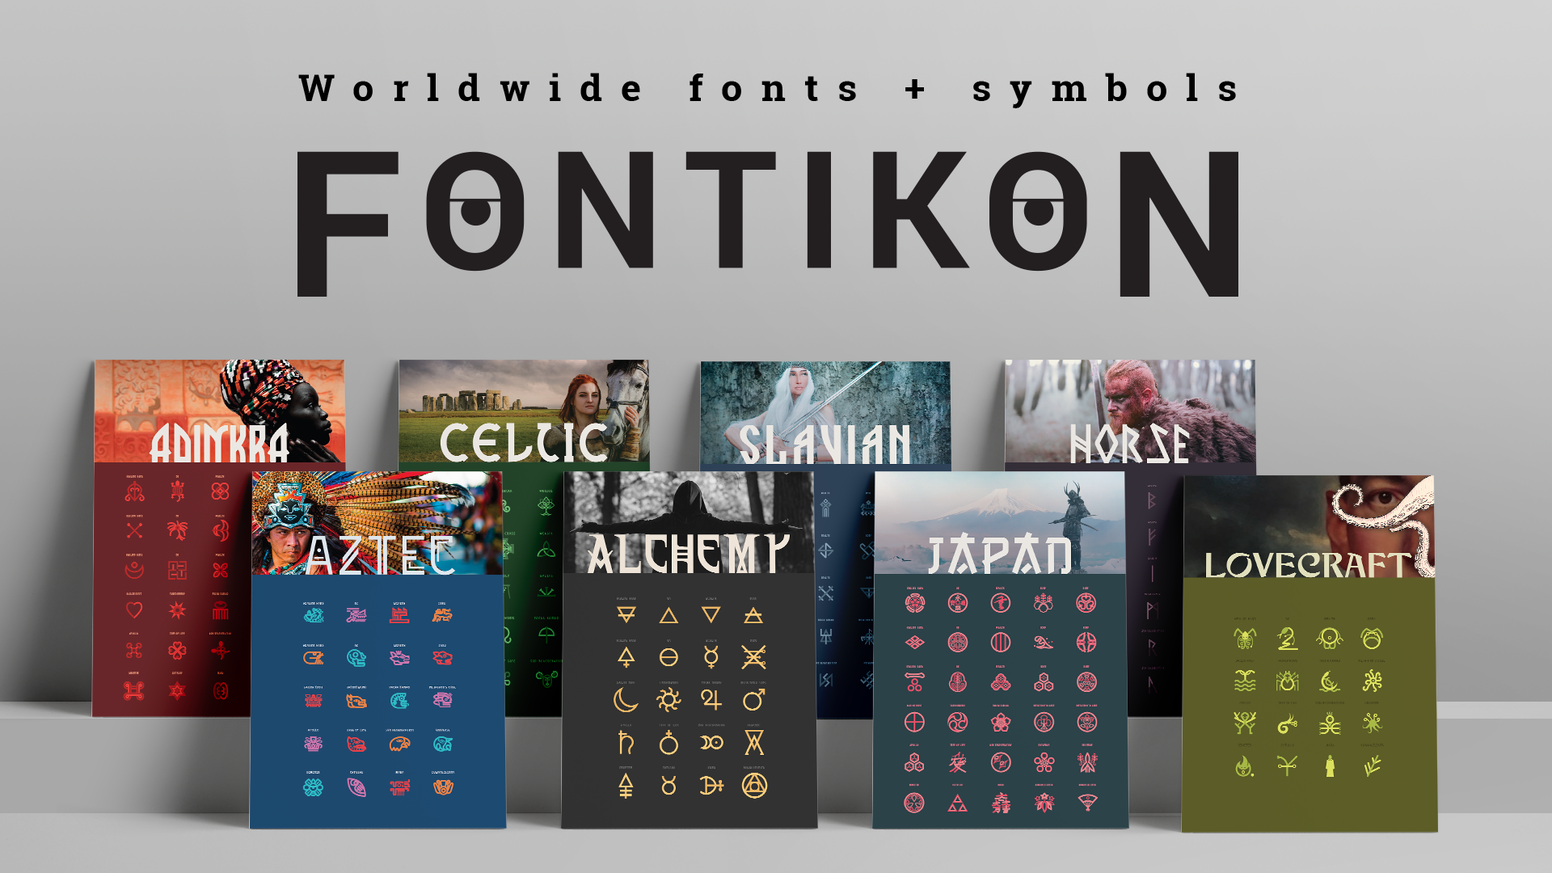 A unique collection of Ethno-Esoteric fonts and symbols inspired by worldwide ancient civilizations